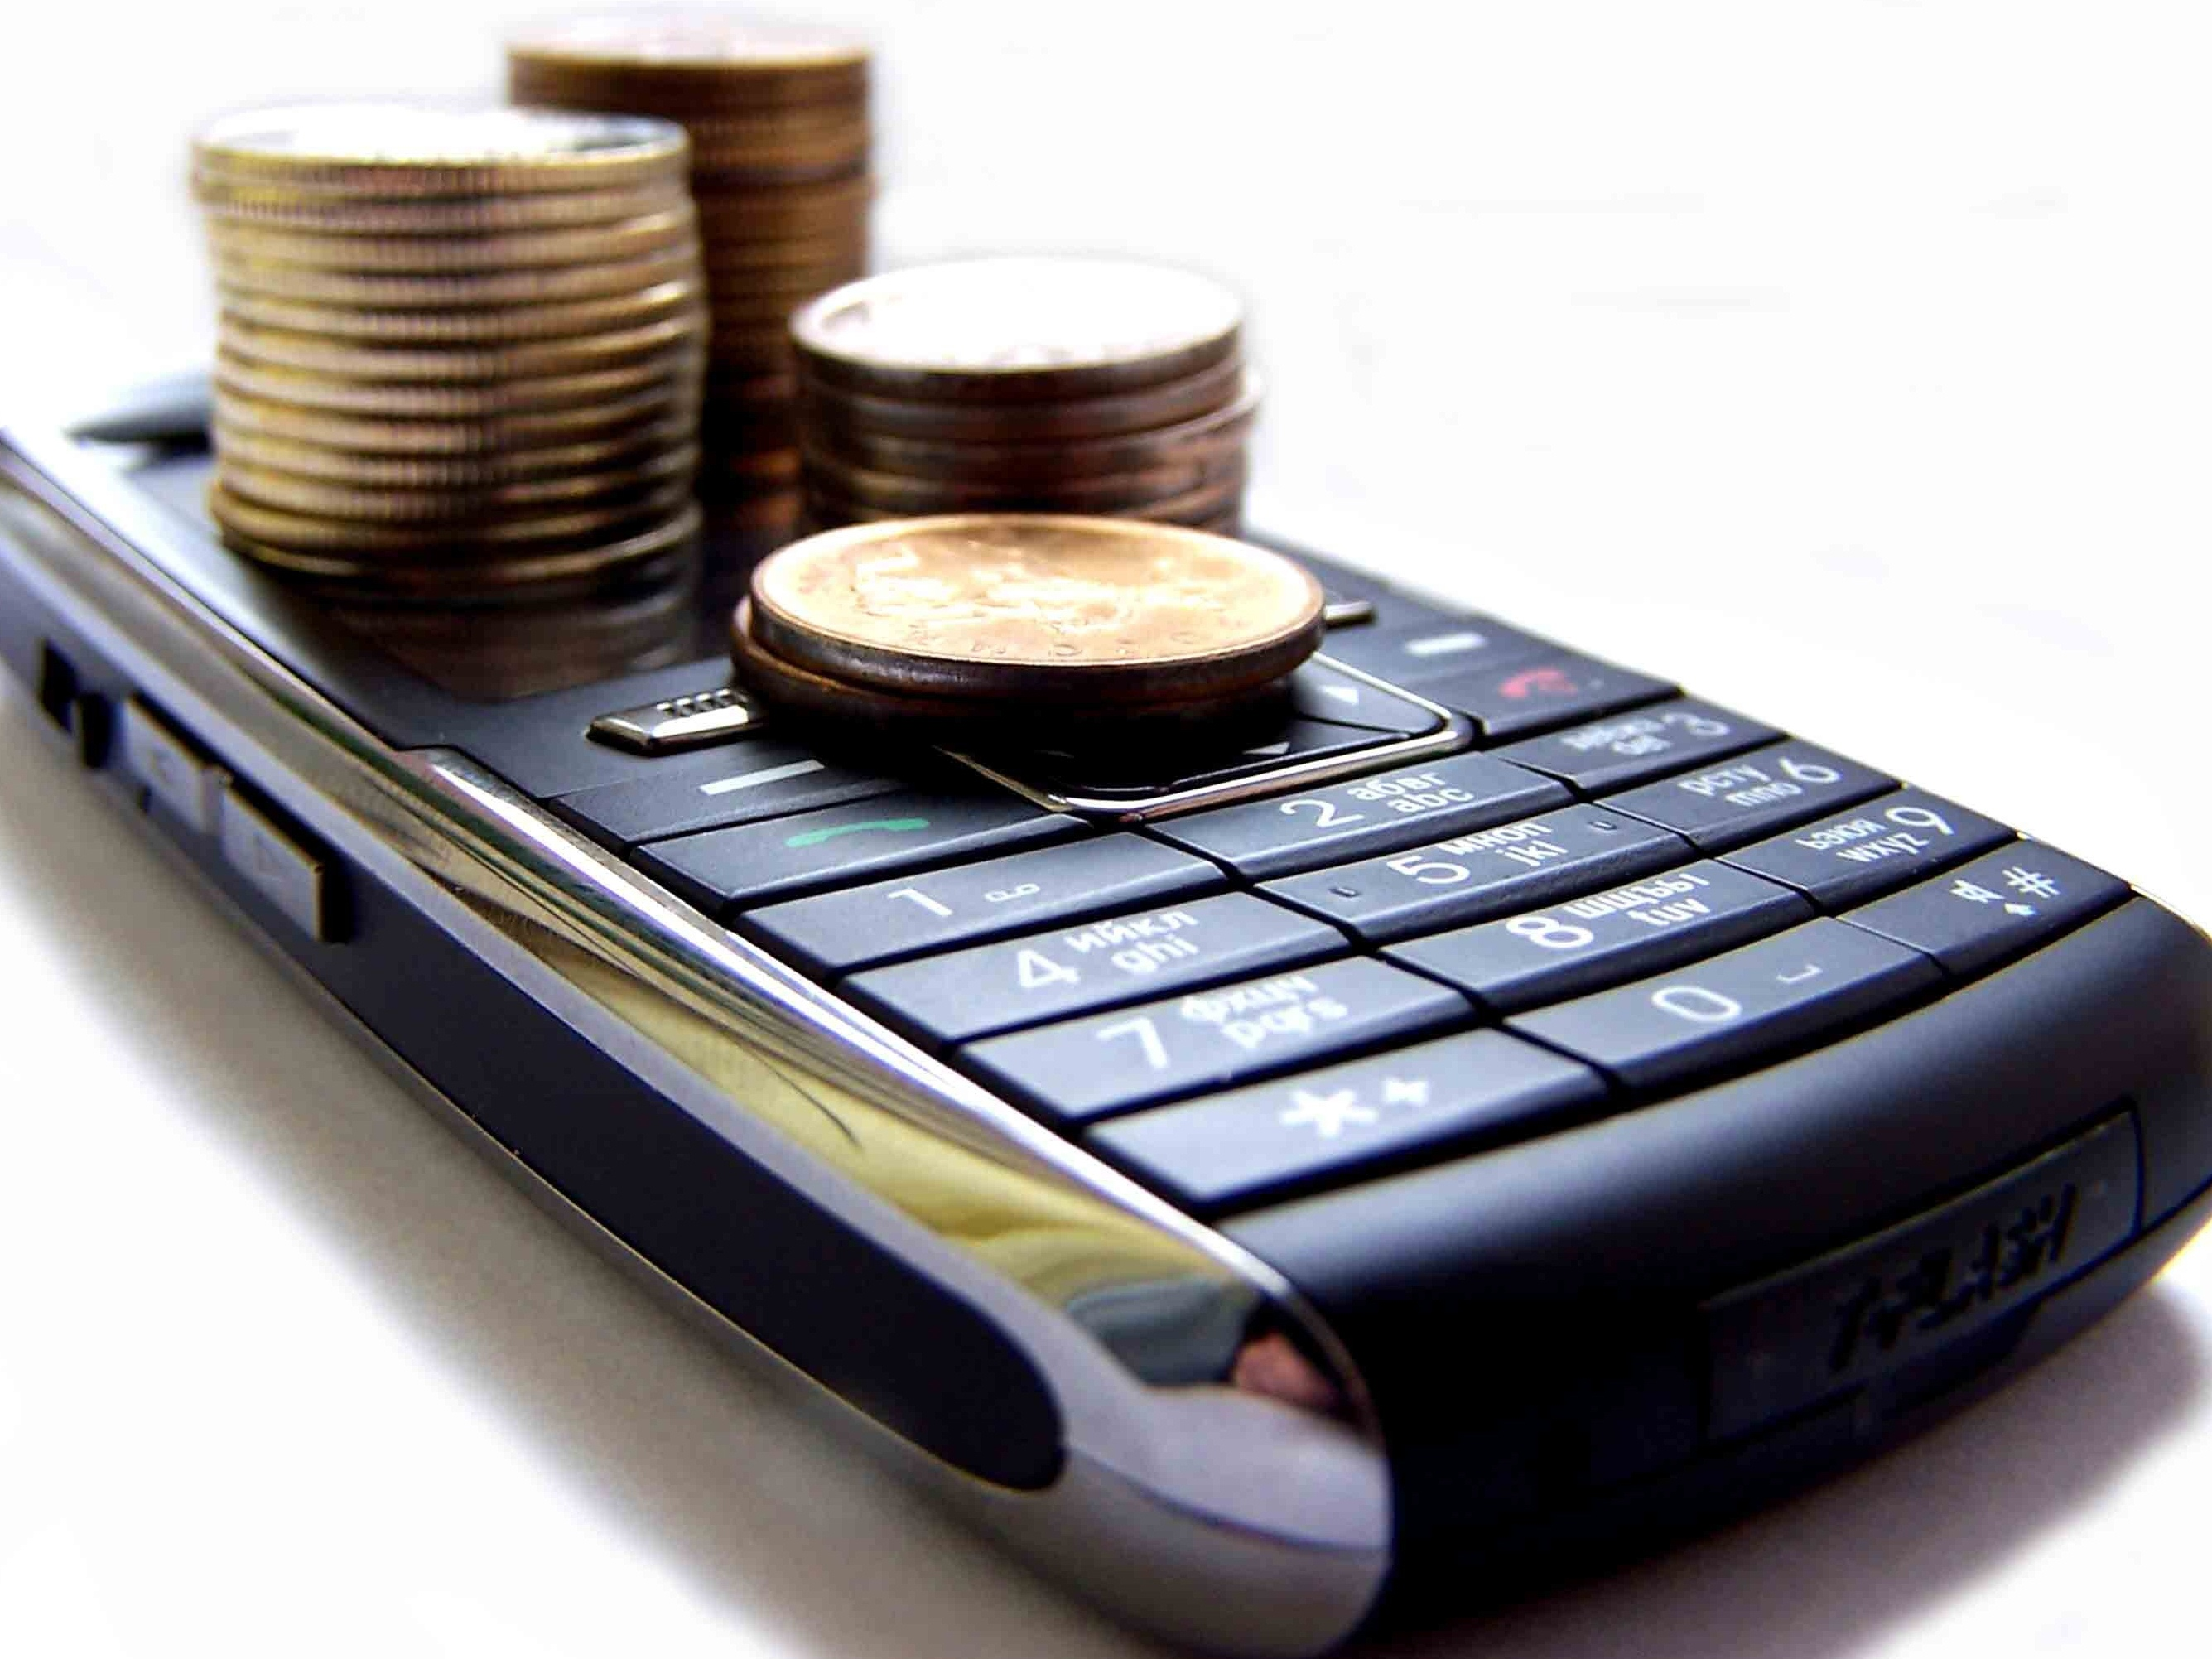 Ugandan Mobile Money Subscribers Have Risen Exponentially, Users Are Currently 53% of the Population